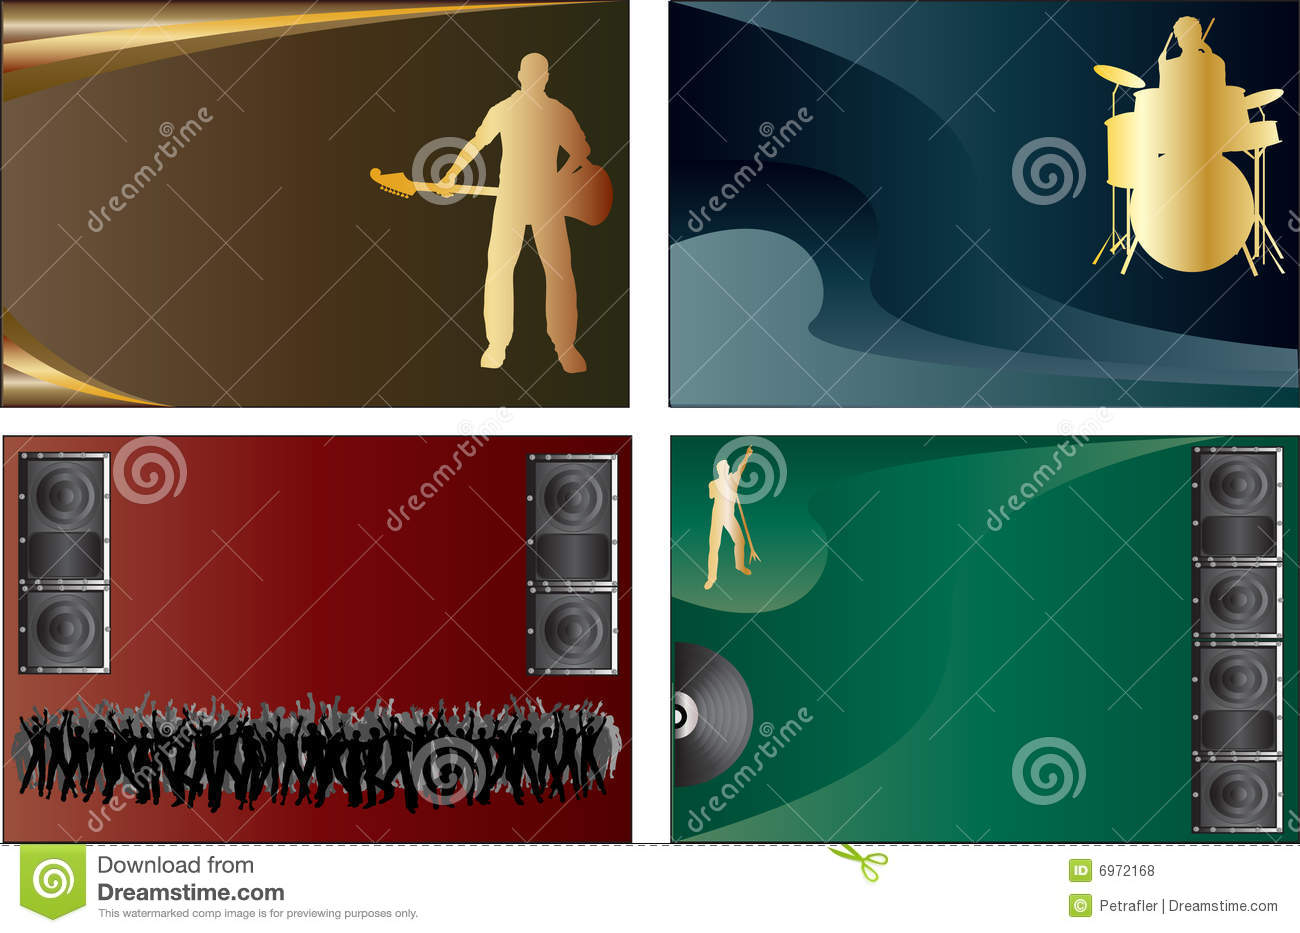 Music Business Cards Royalty Free Stock Photos.